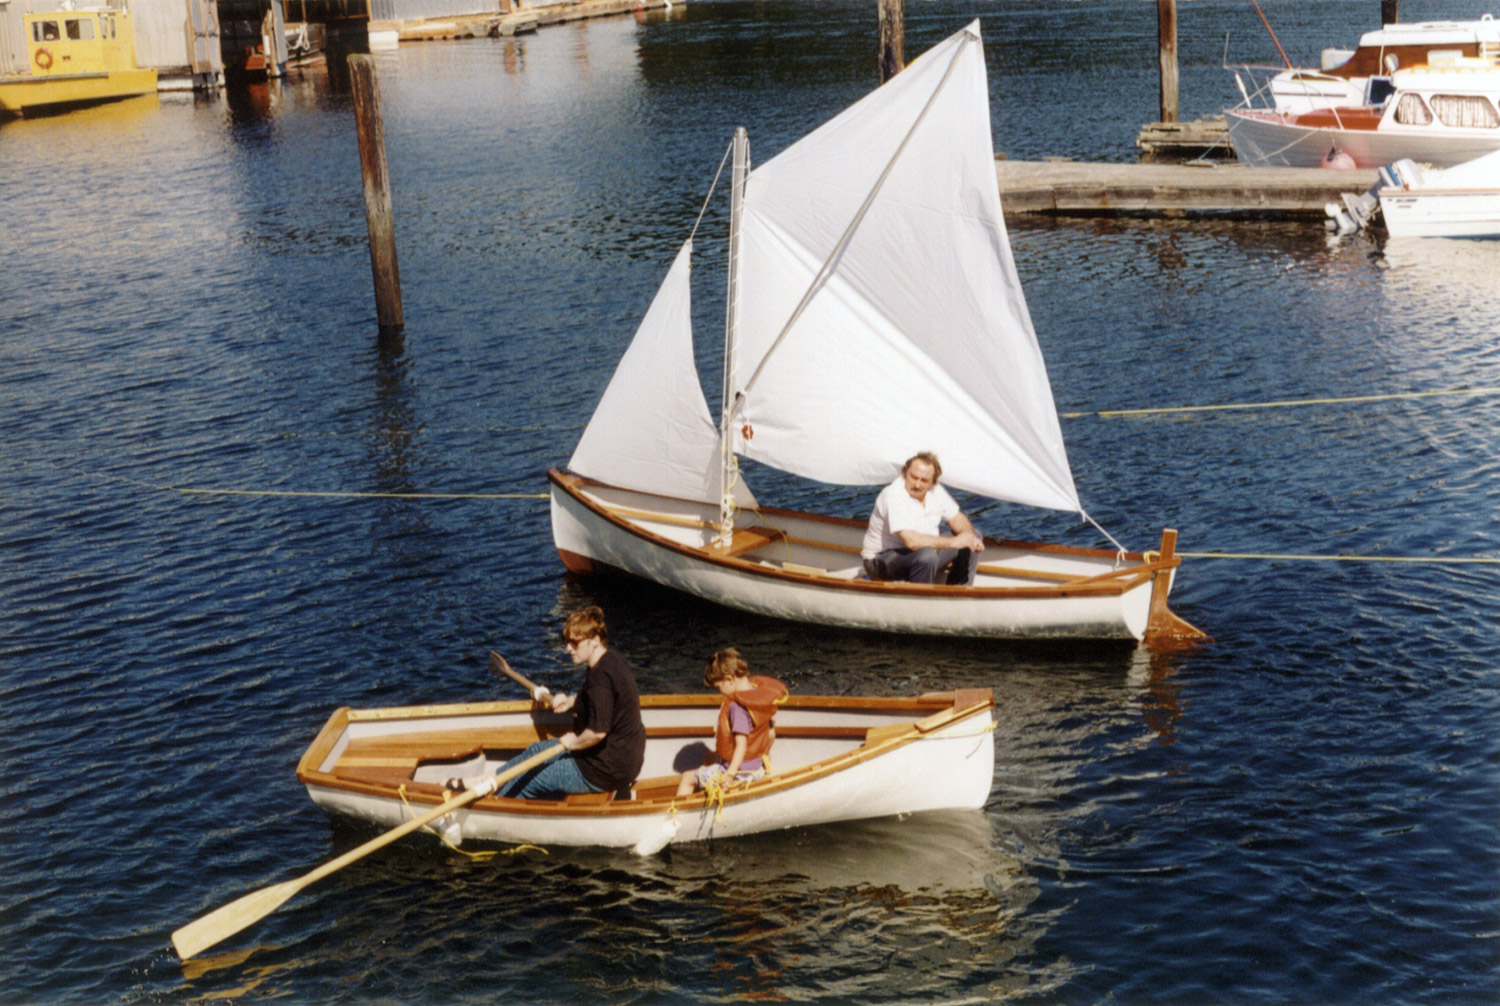 2 Whitehalls being used as rowboat and sailboat